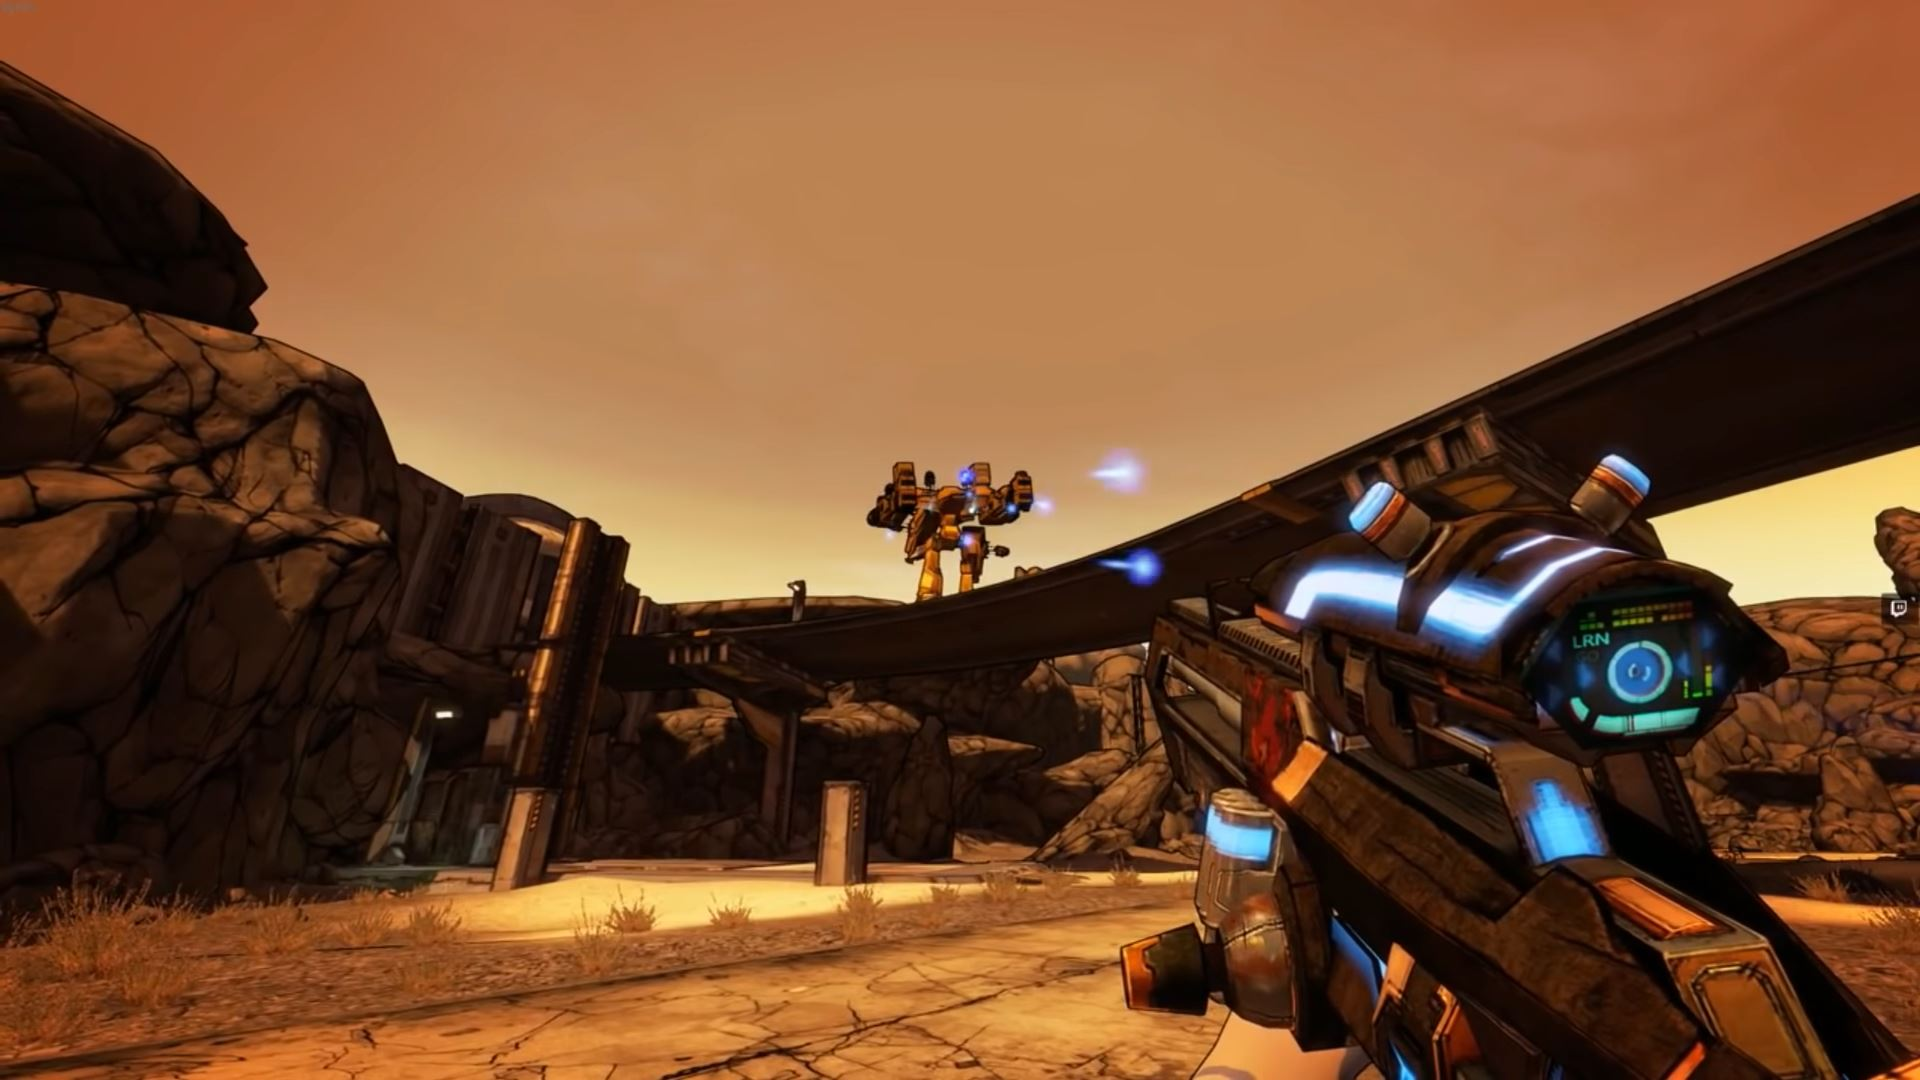 This upcoming mod turns Borderlands 2 into Superhot, and it looks